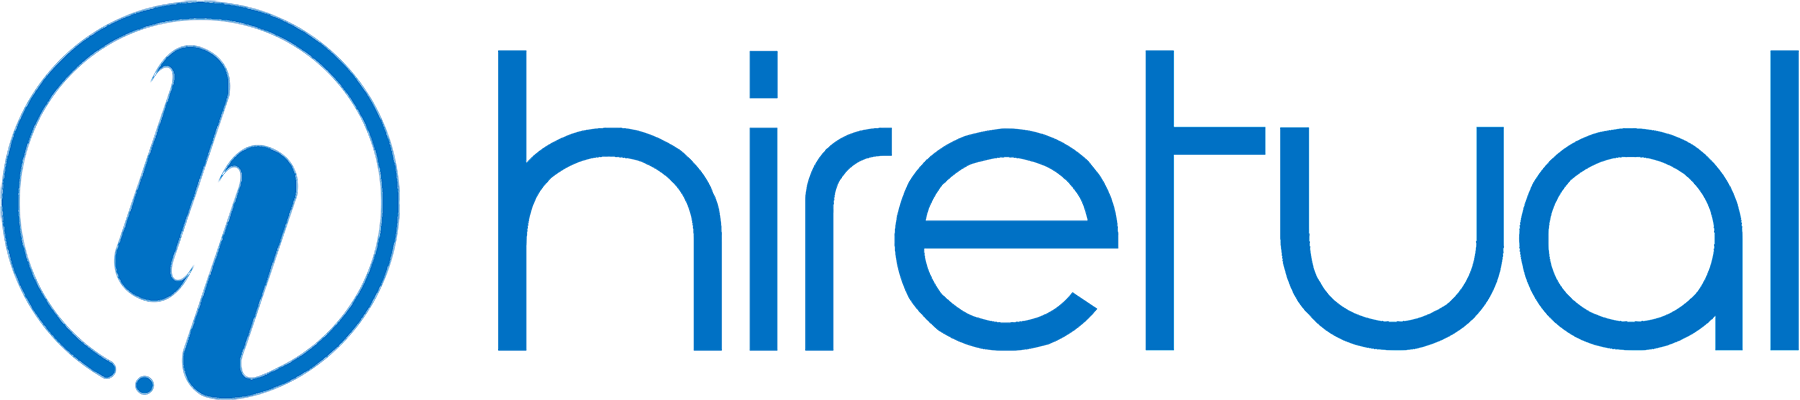 RecTech is sponsored by Hiretual